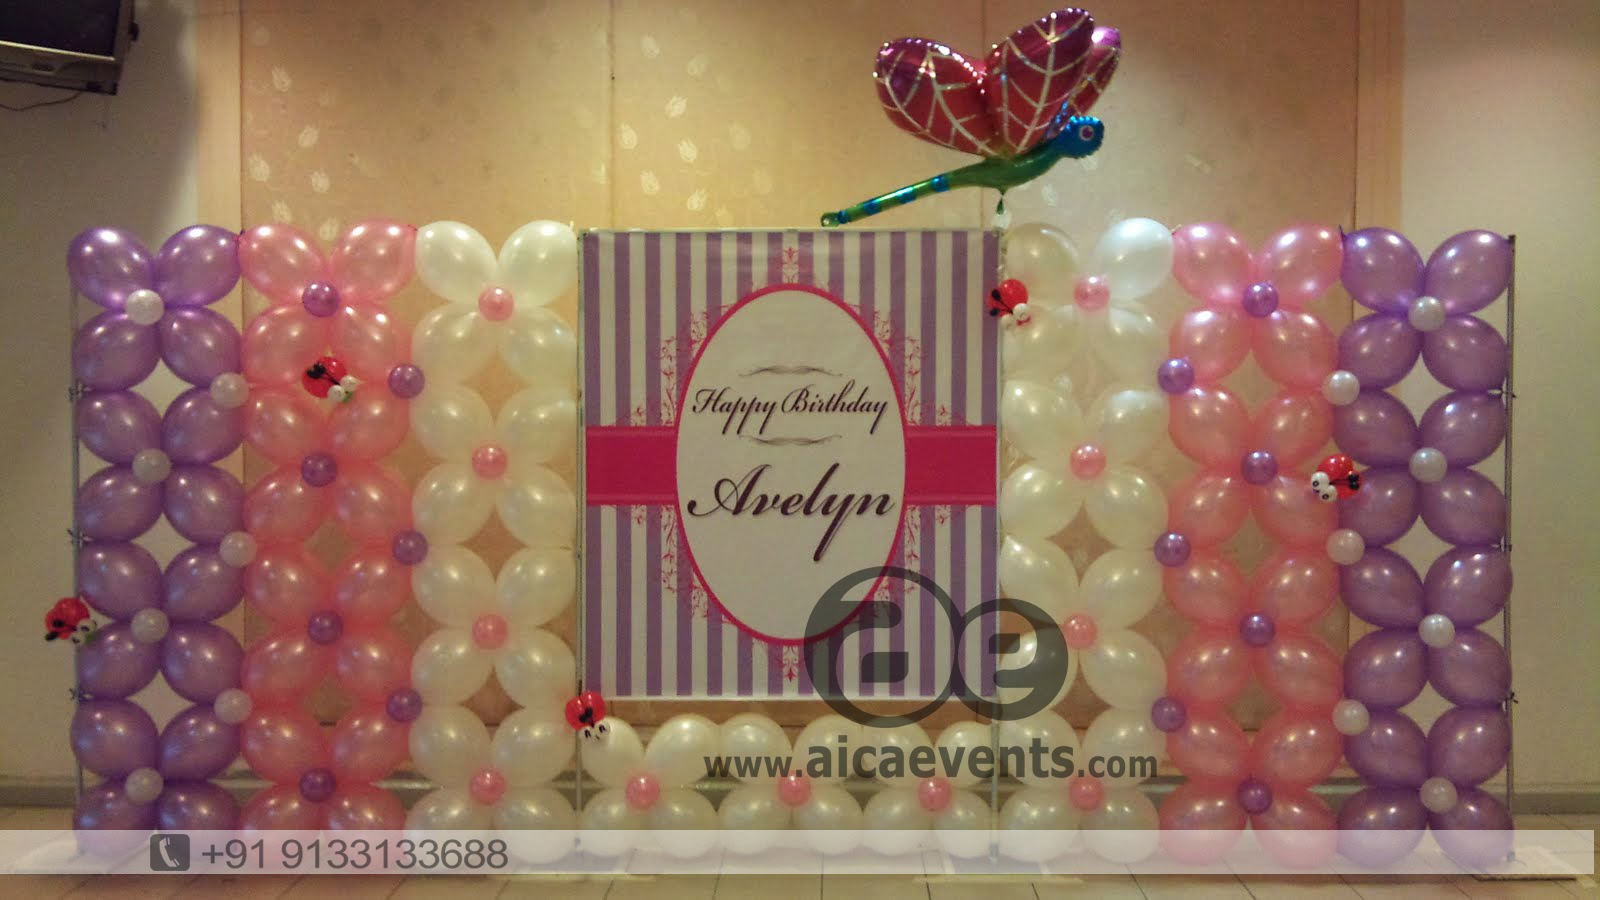 aicaevents: Balloon Decoration For Birthday Parties